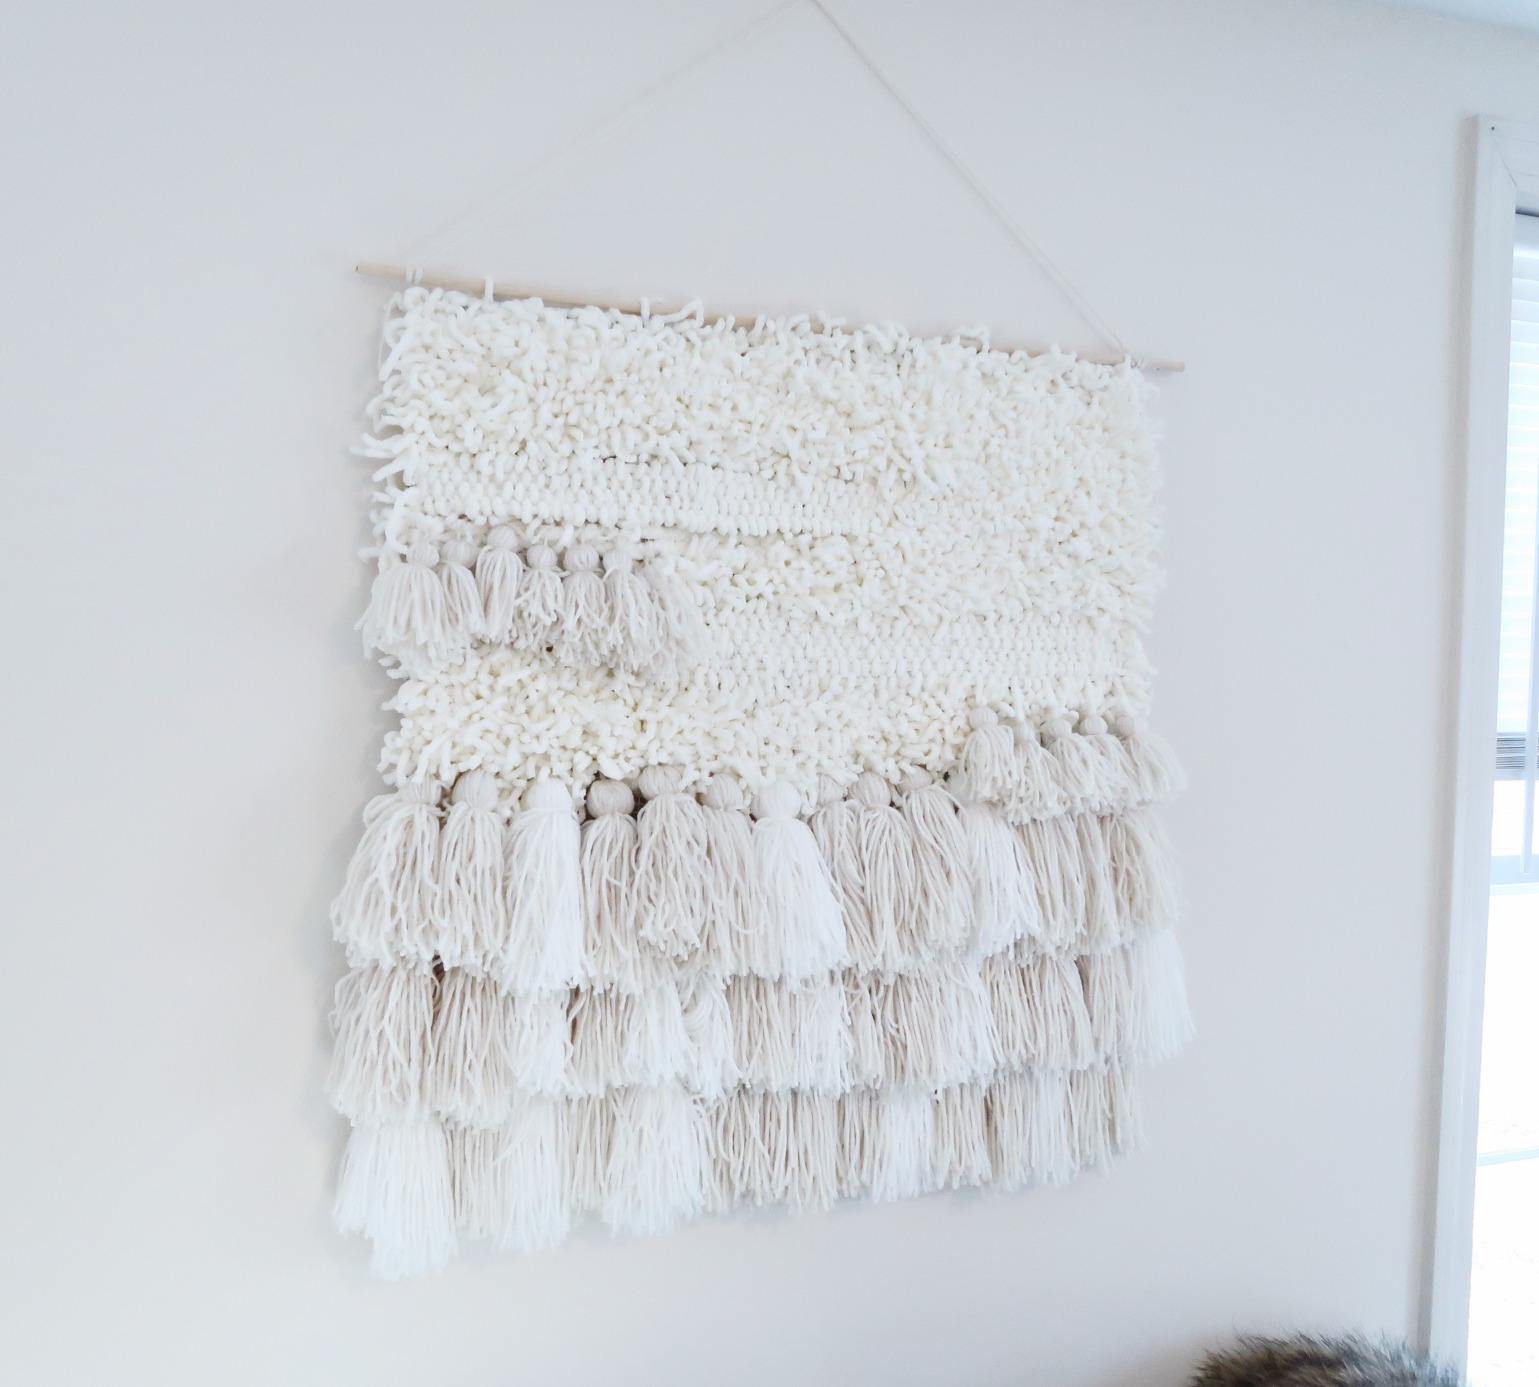 DIY Yarn Wall Hanging Art